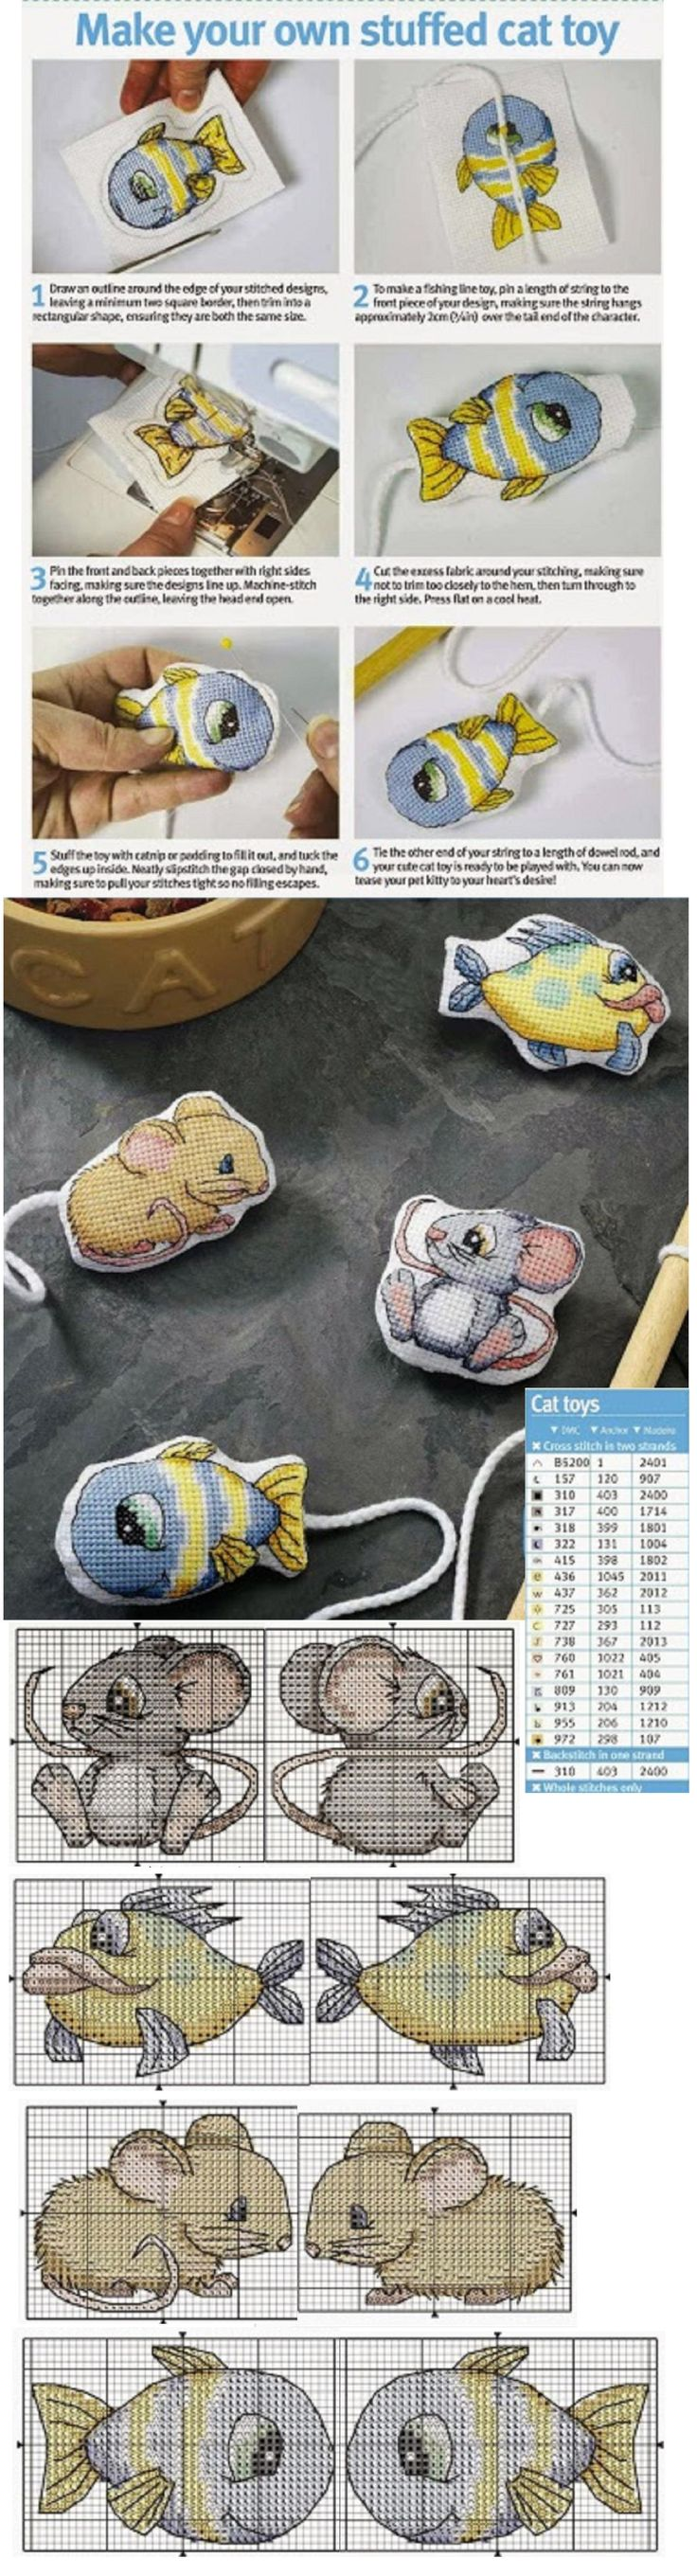 Cross Stitch Crazy - crazy to spend that much time stitching a toy for your cat!